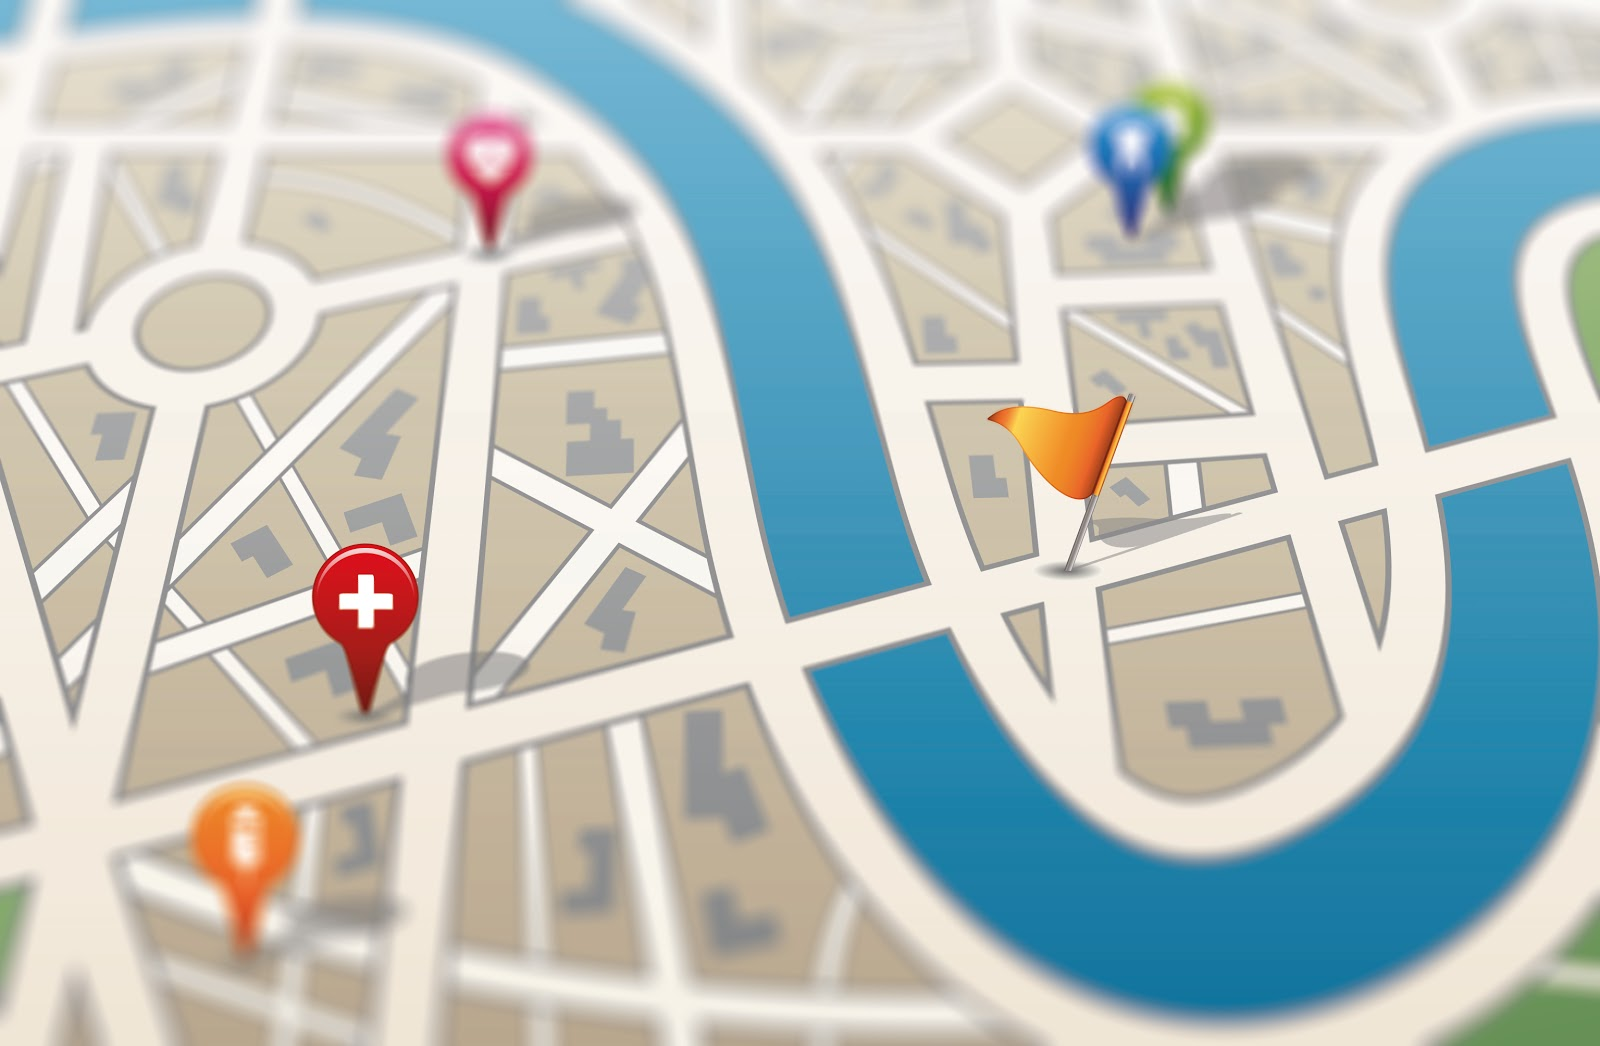 3# track location using Google map and online tools